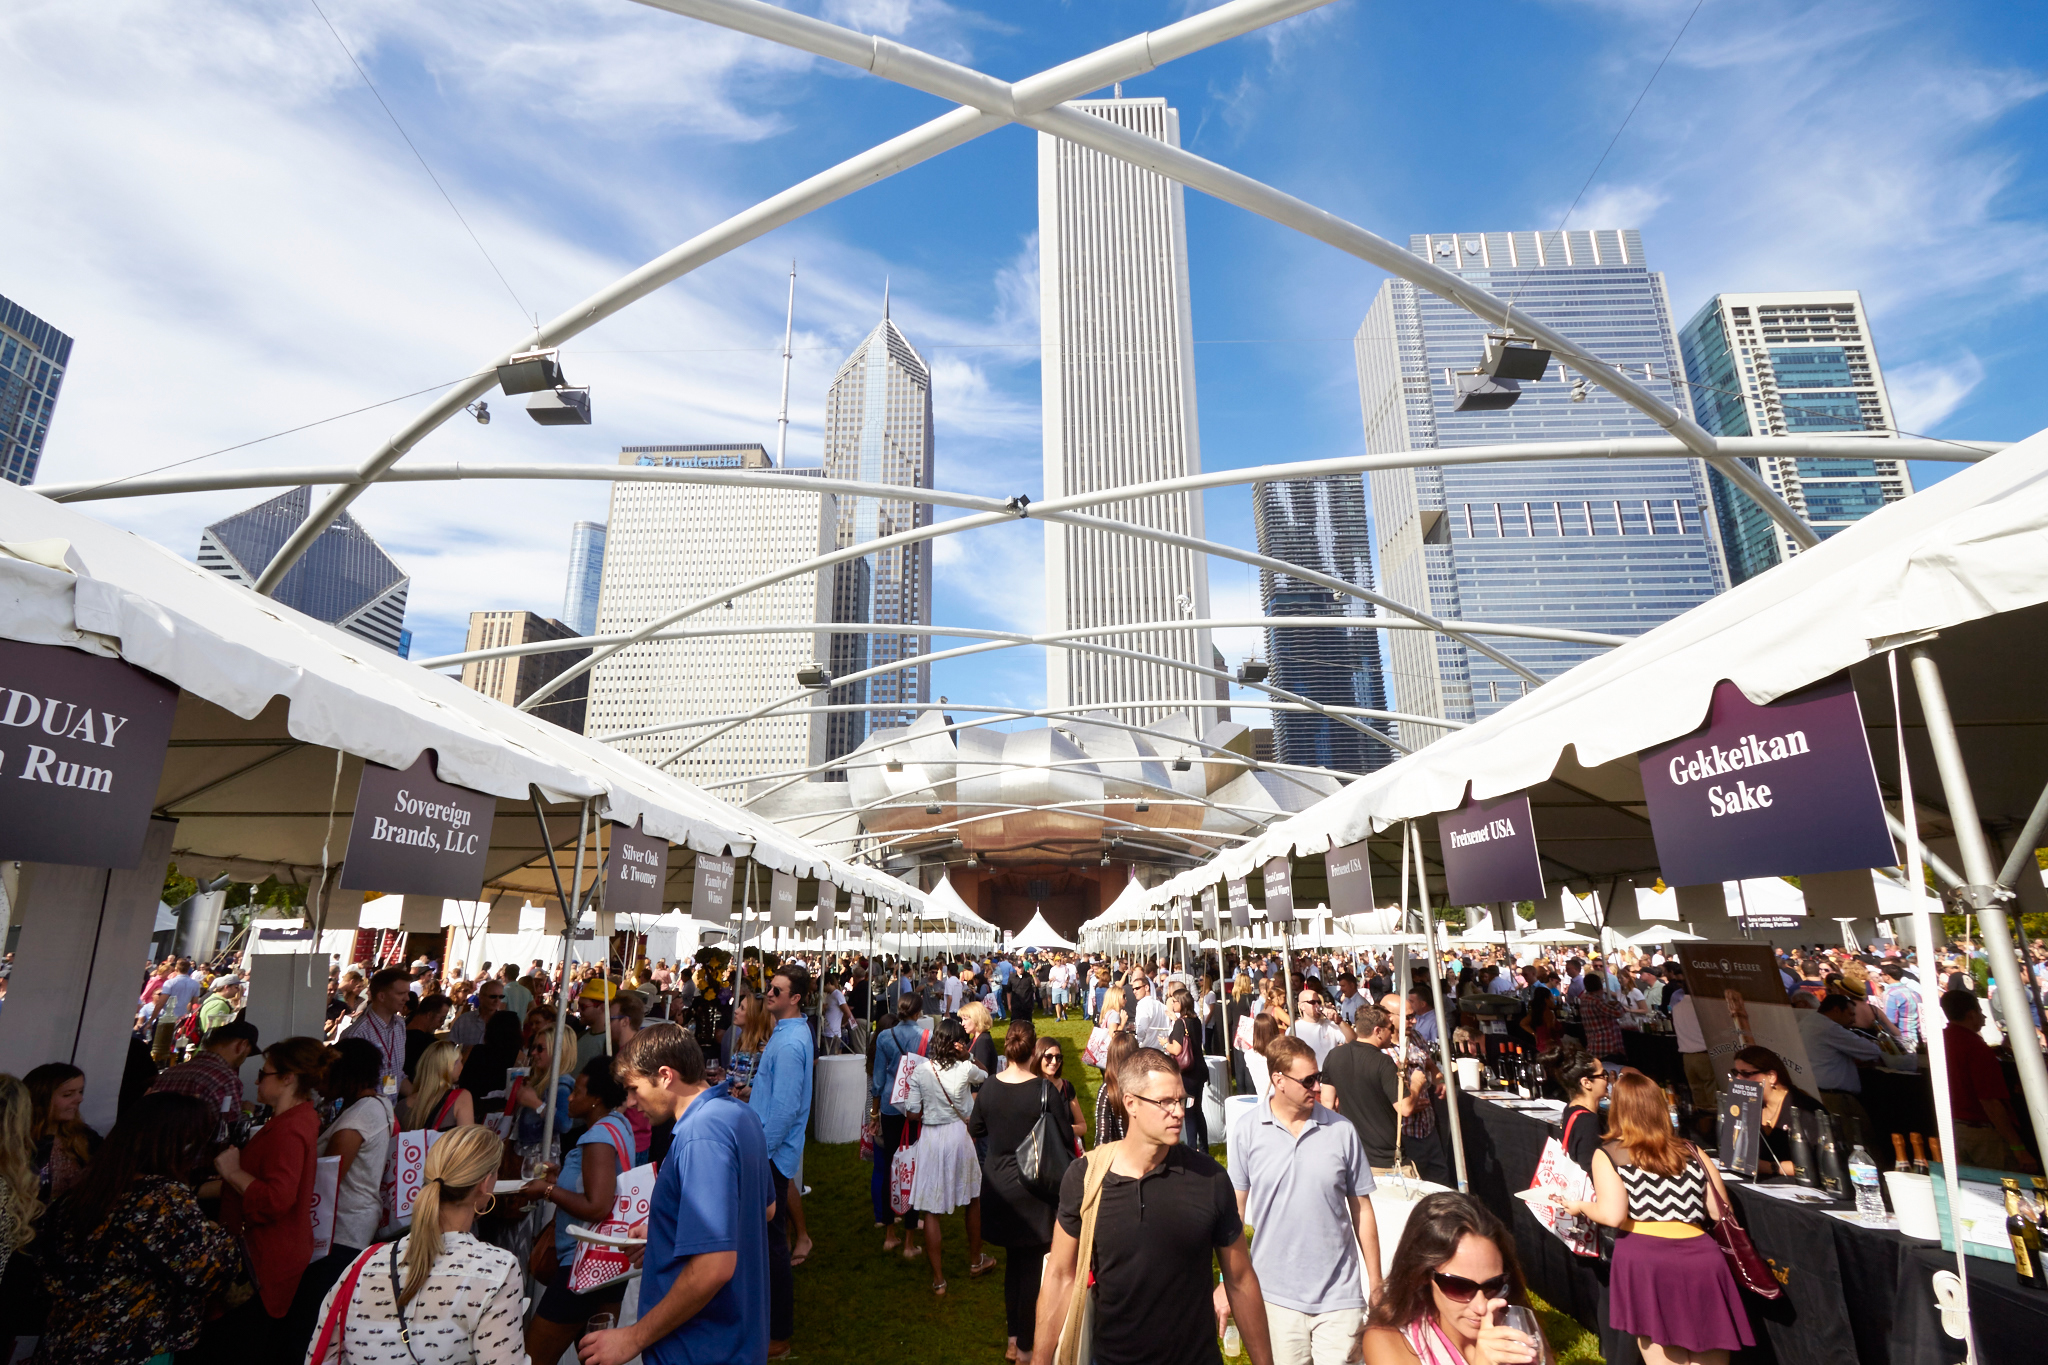 Find something great to do in Chicago this week